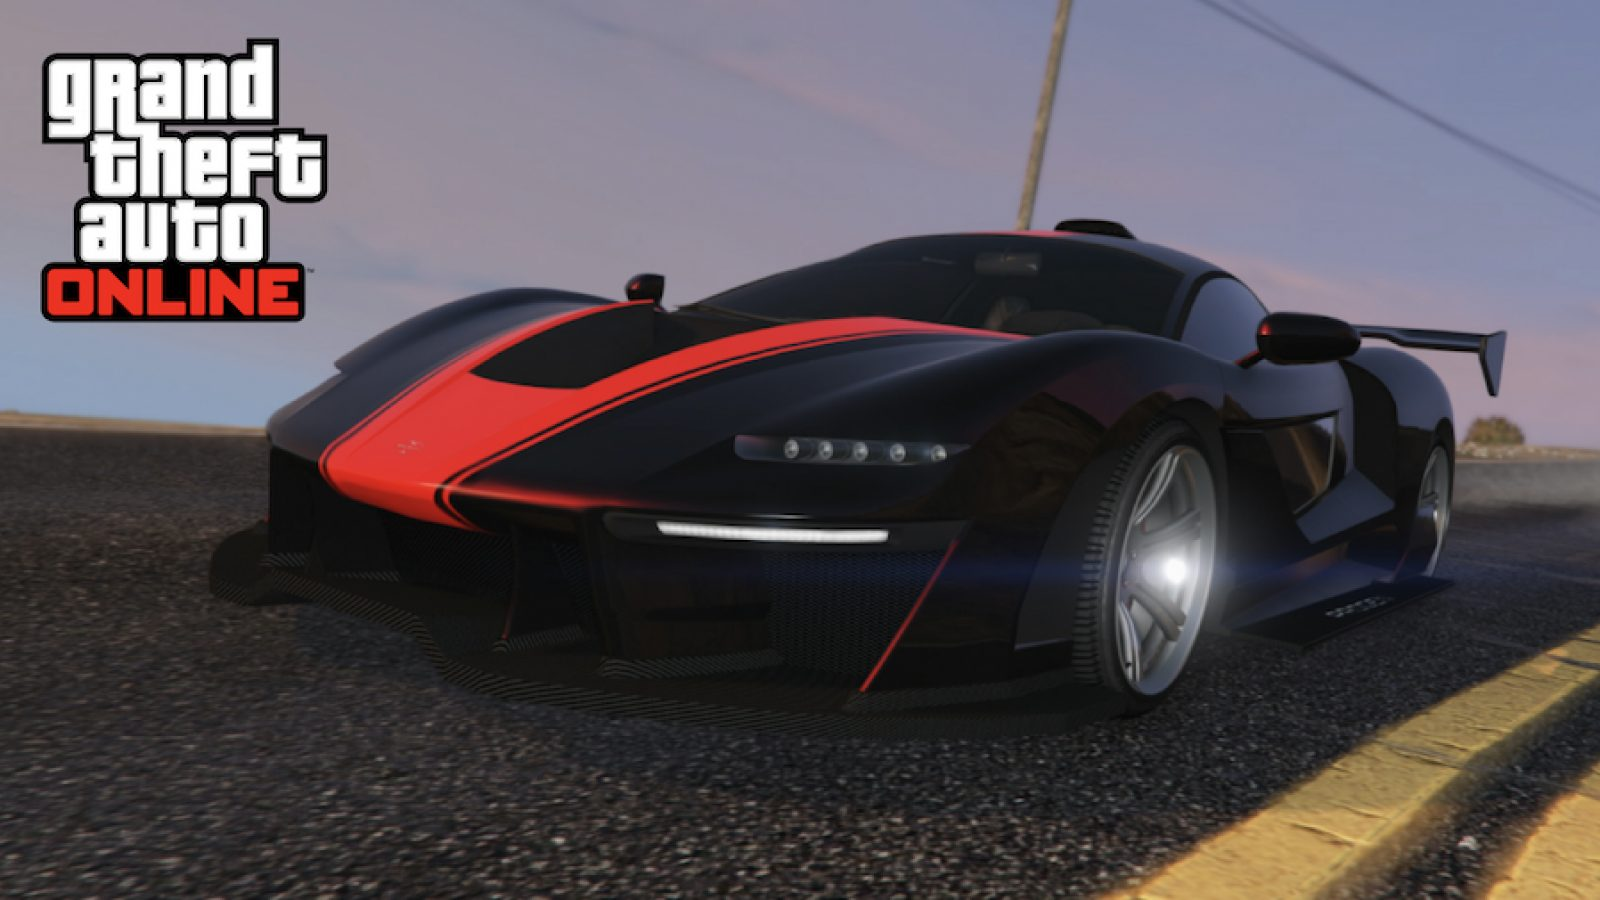 Gta Online August 15 Update Patch Notes New Cars Cash Bonuses Twitch Prime And More Dexerto